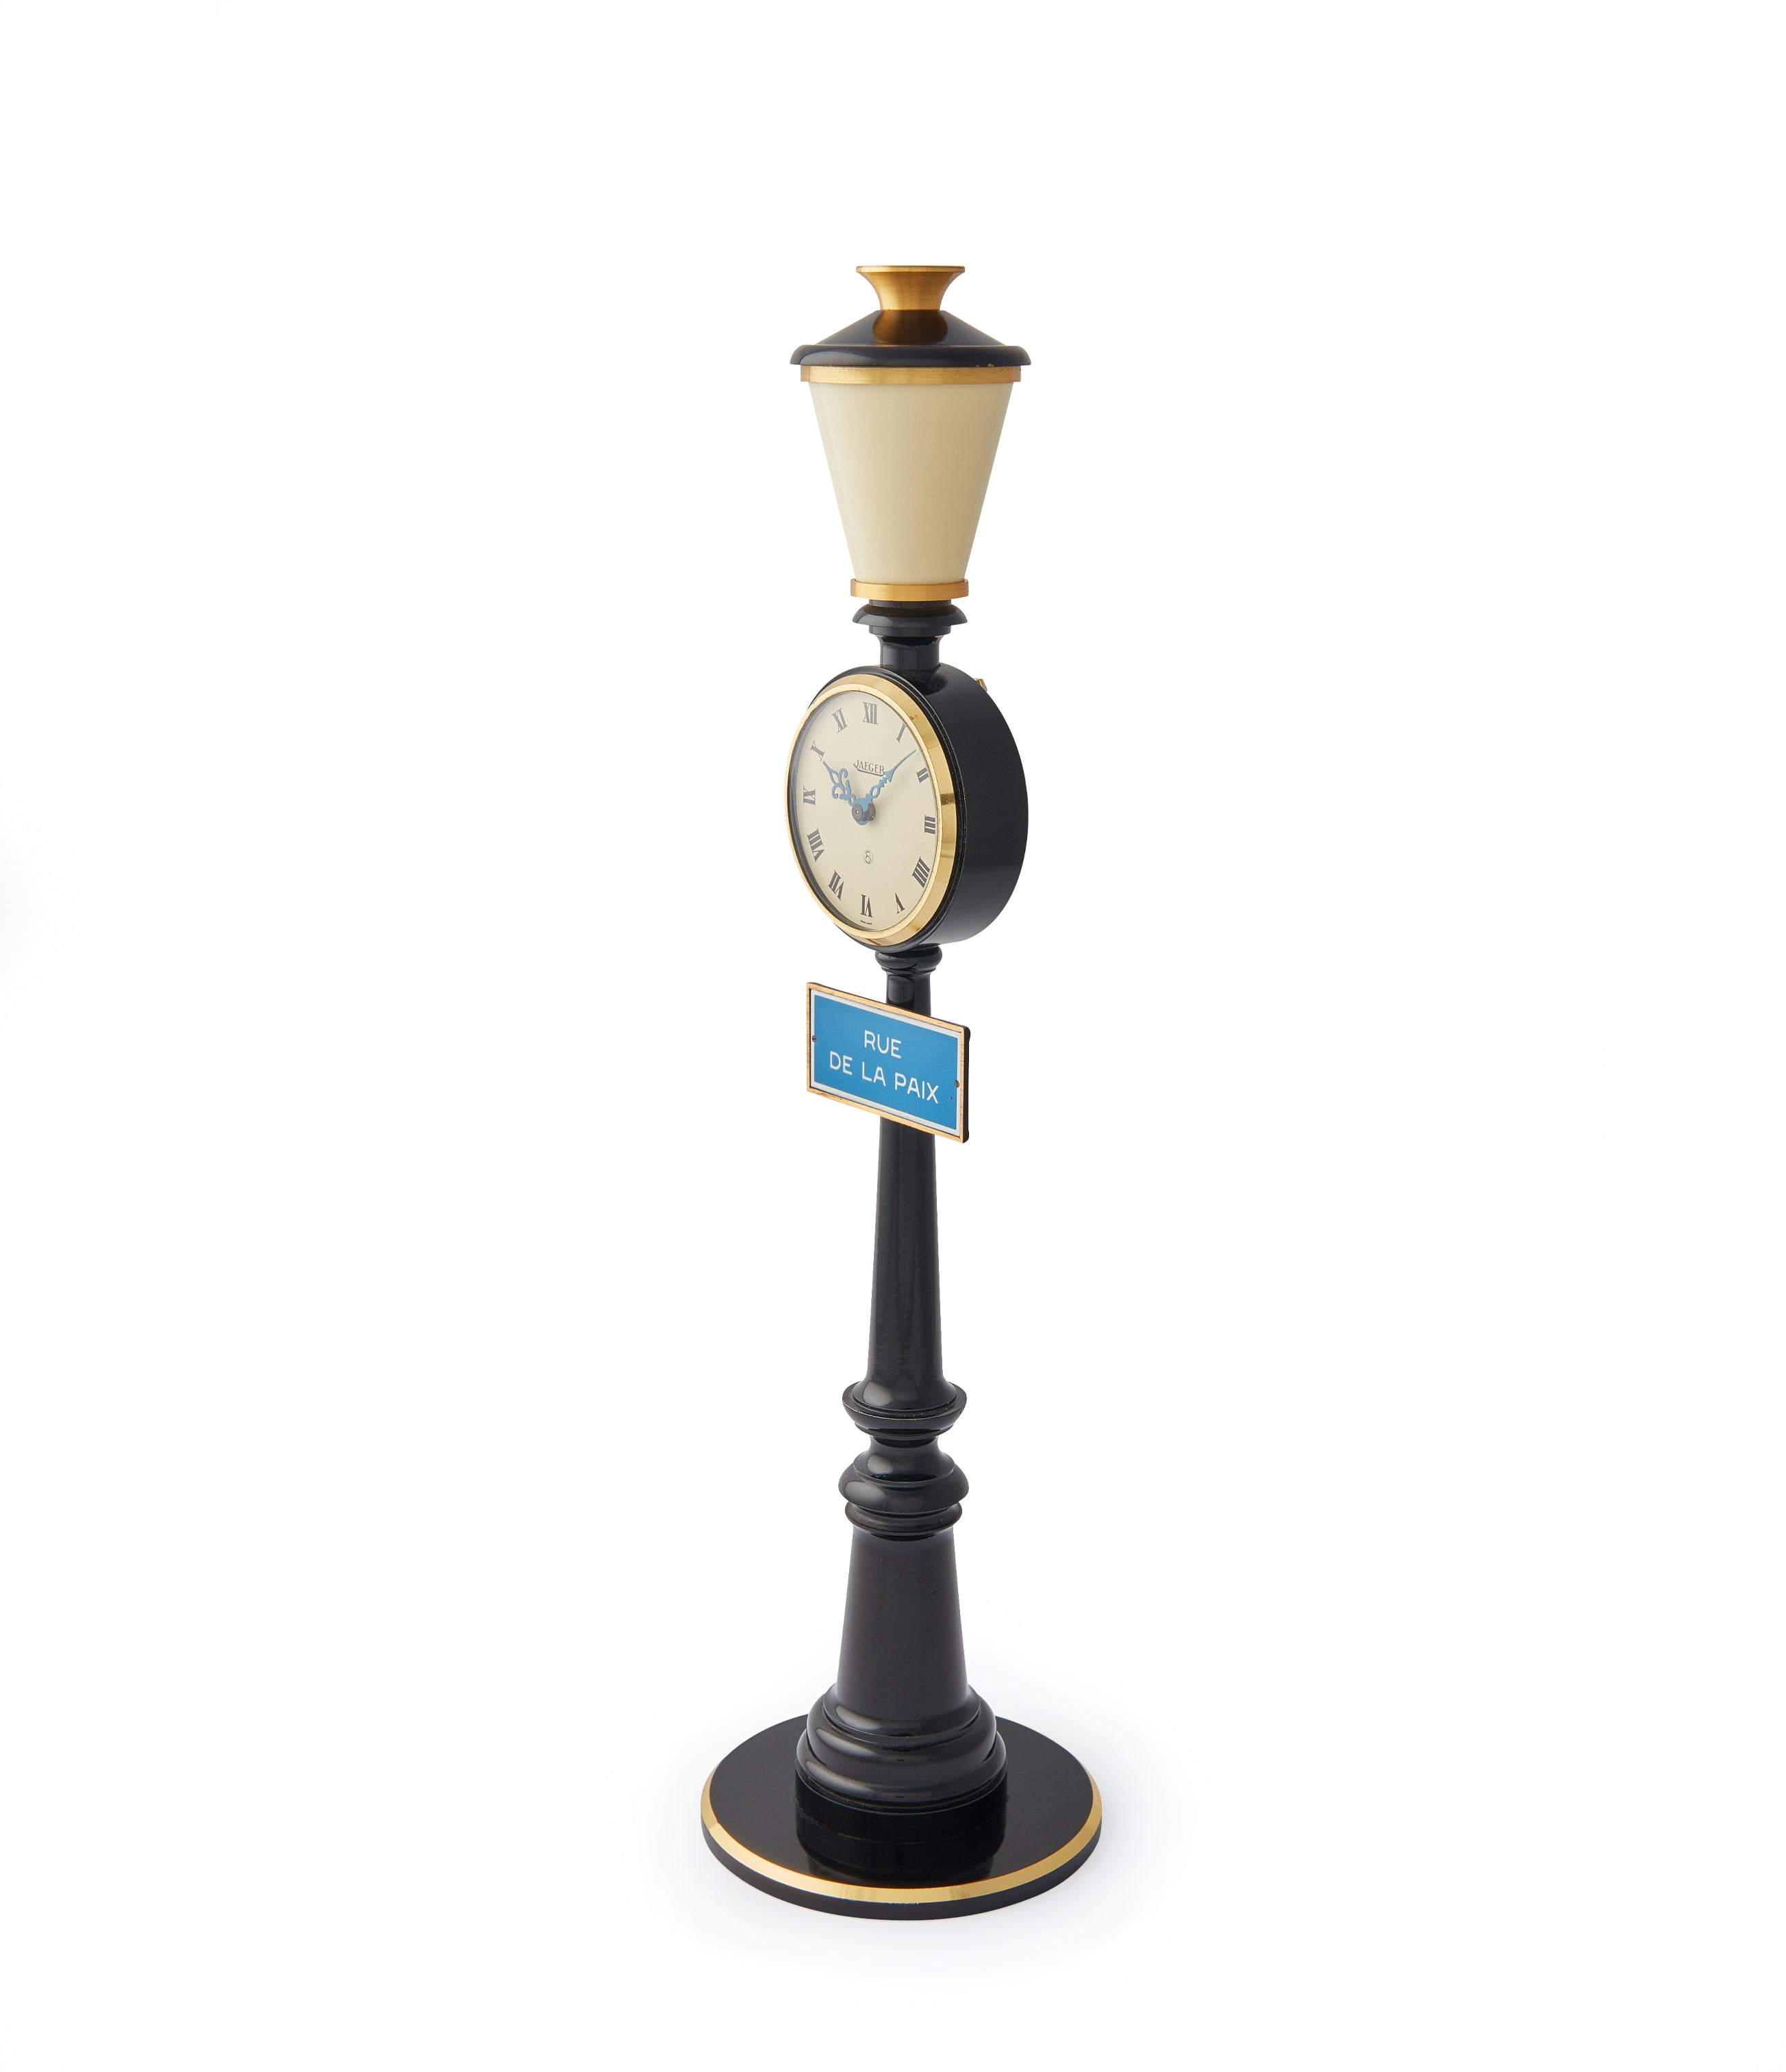 Rue de la Paix Lamp Post Clock | 8-day desk clock